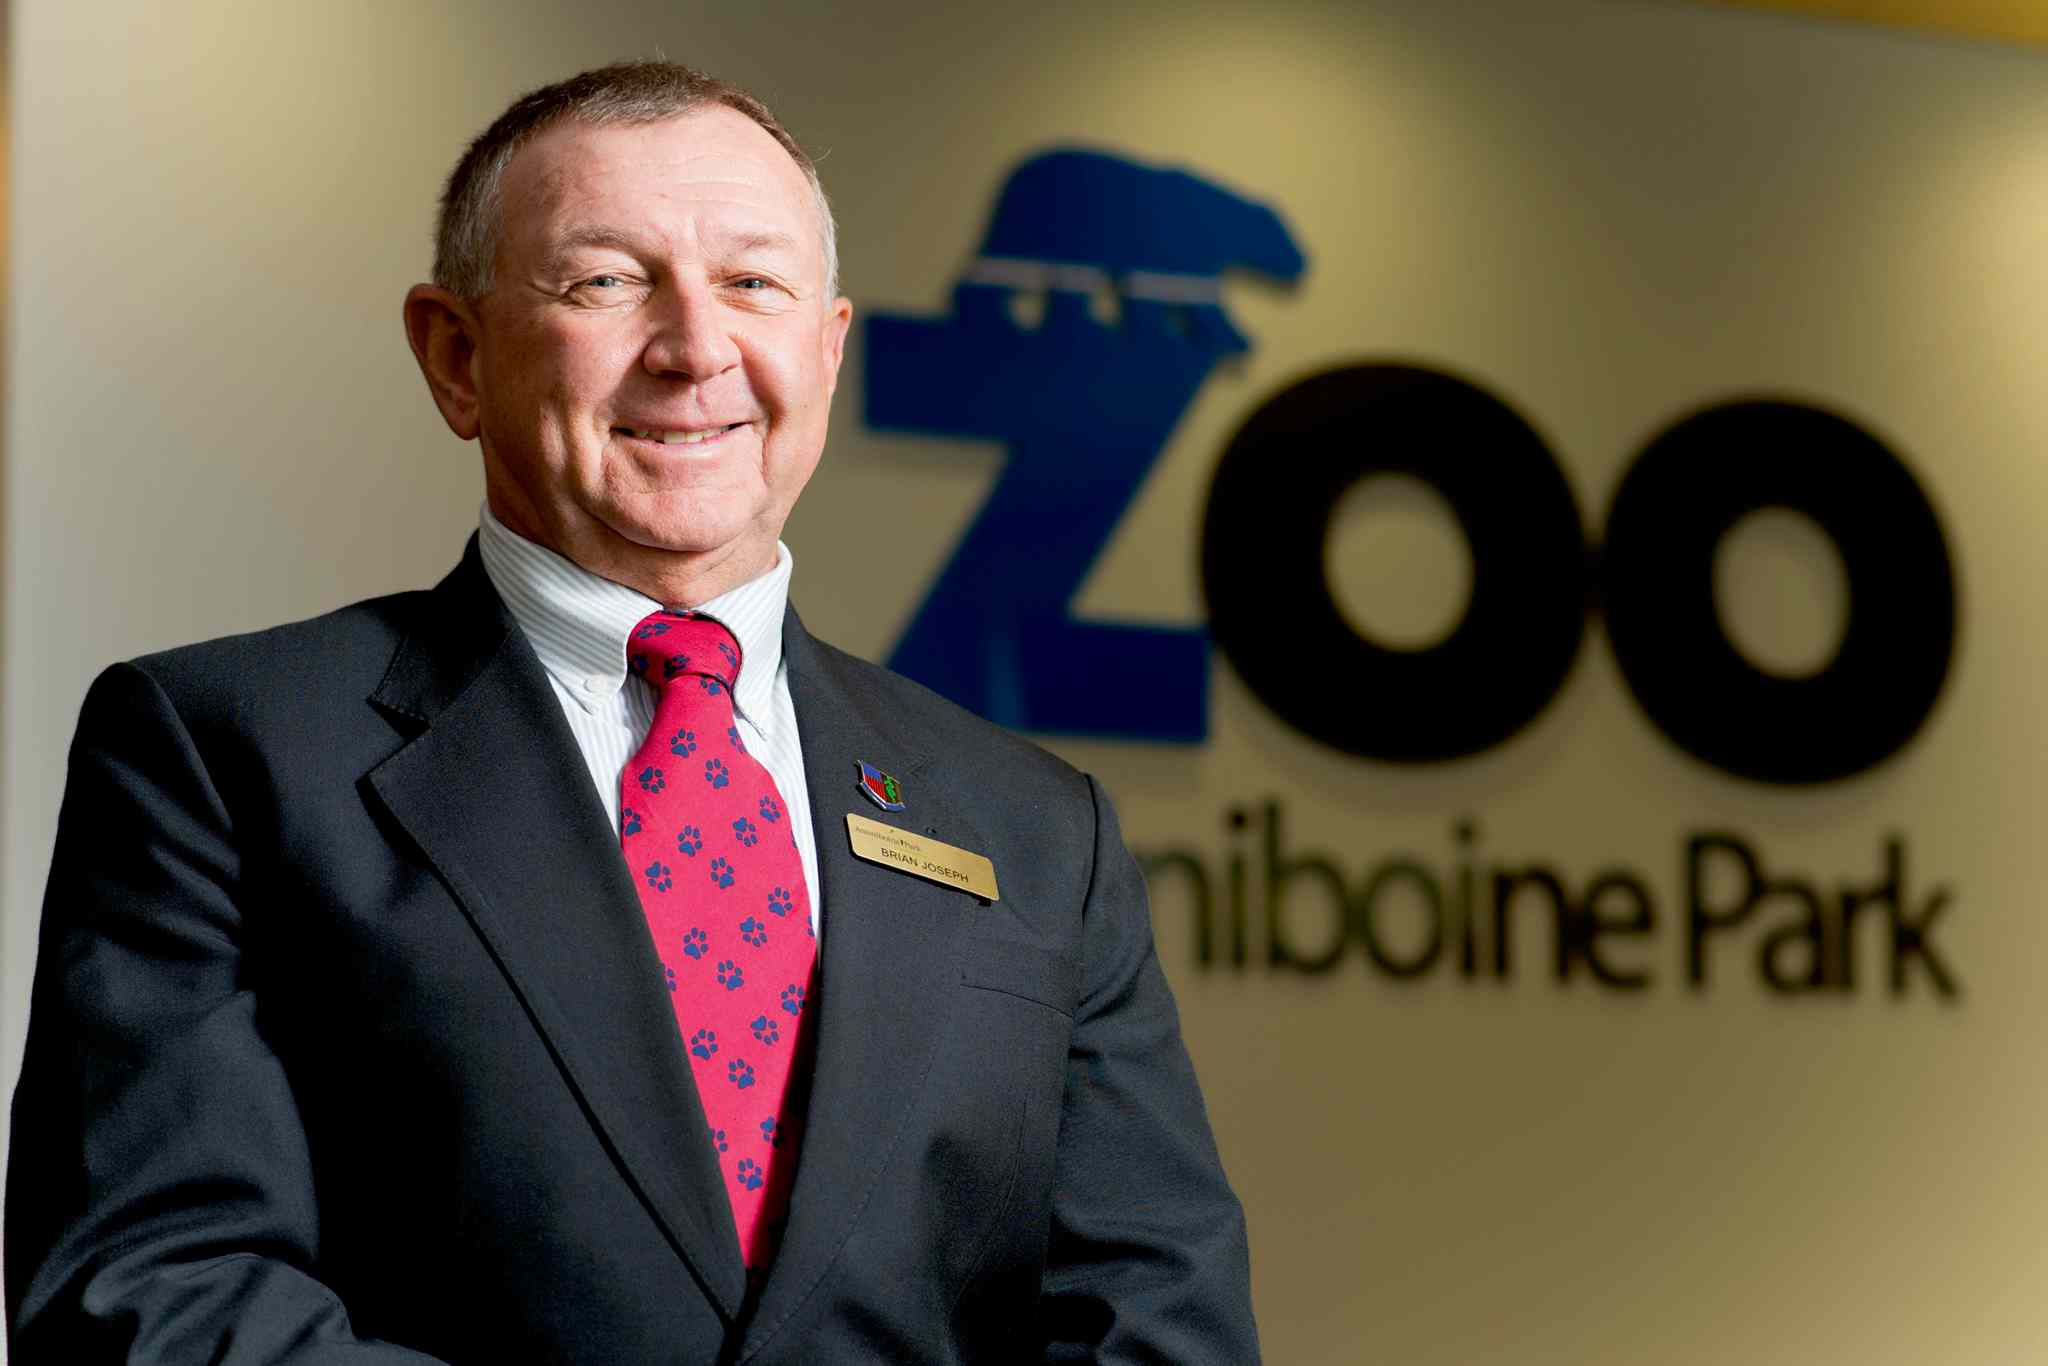 Dr. Brian Joseph is the new director of the zoological operations at the Assiniboine Park Zoo.